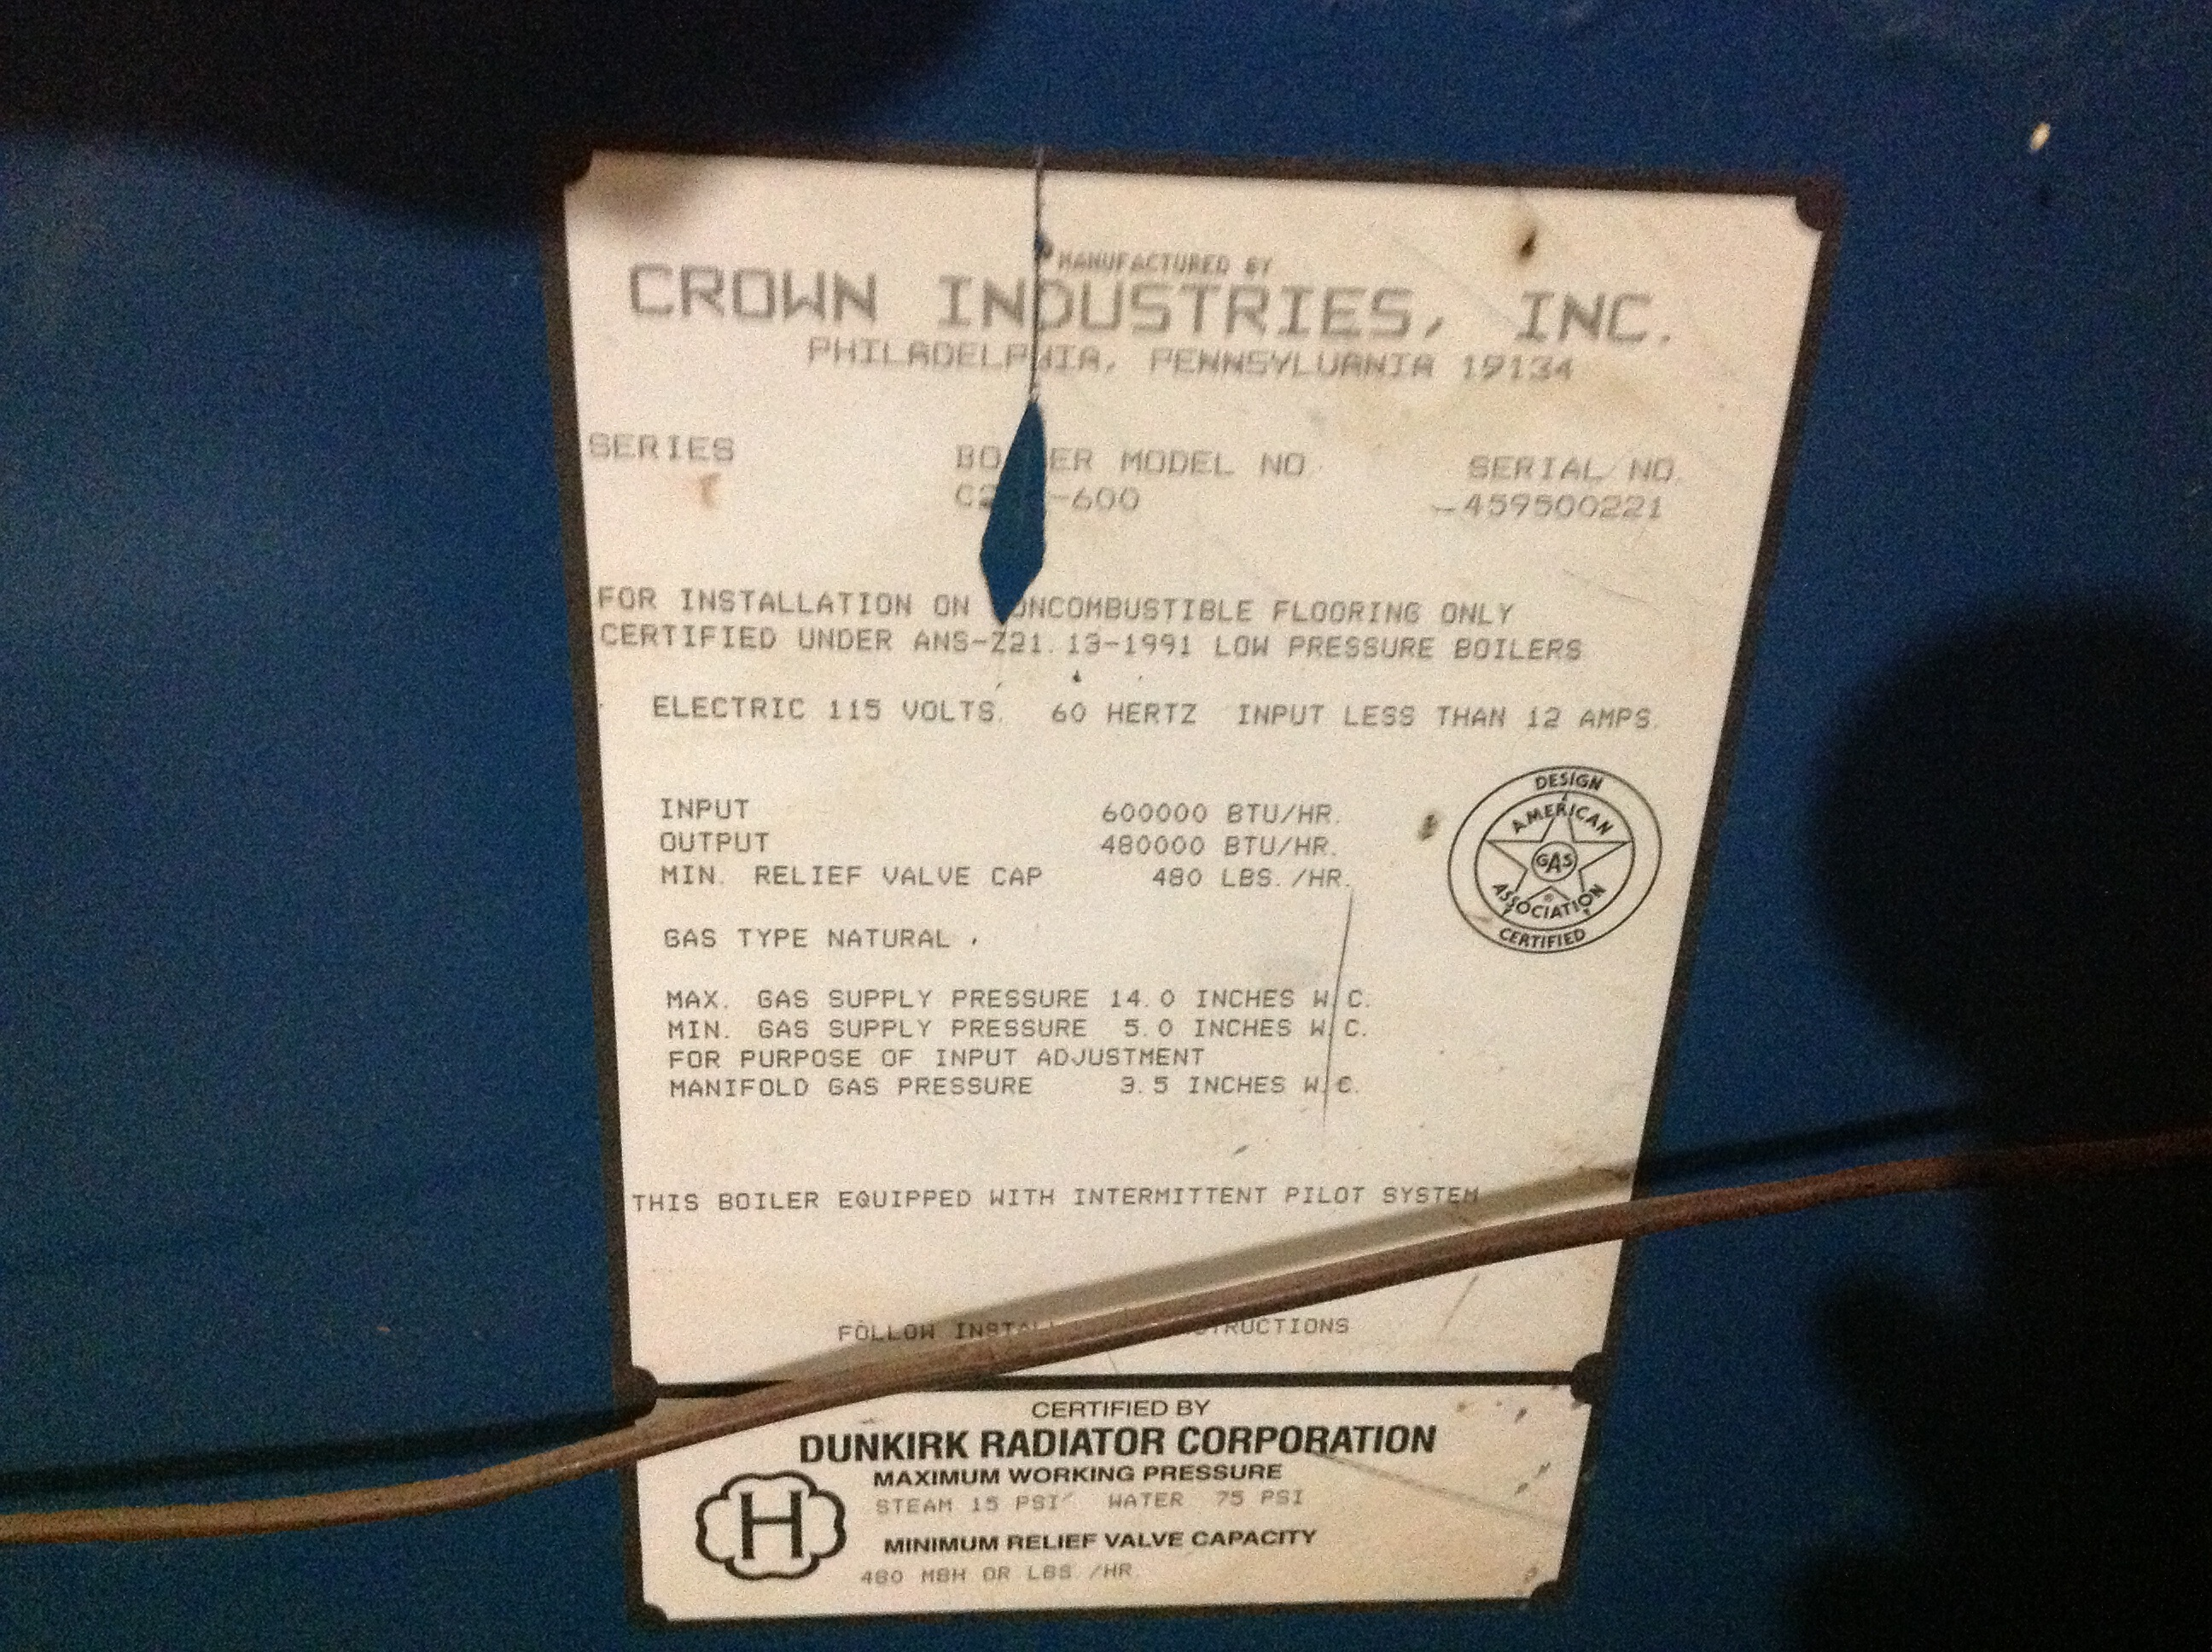 Best replacement for old Crown c-247 steam boiler — Heating Help ...